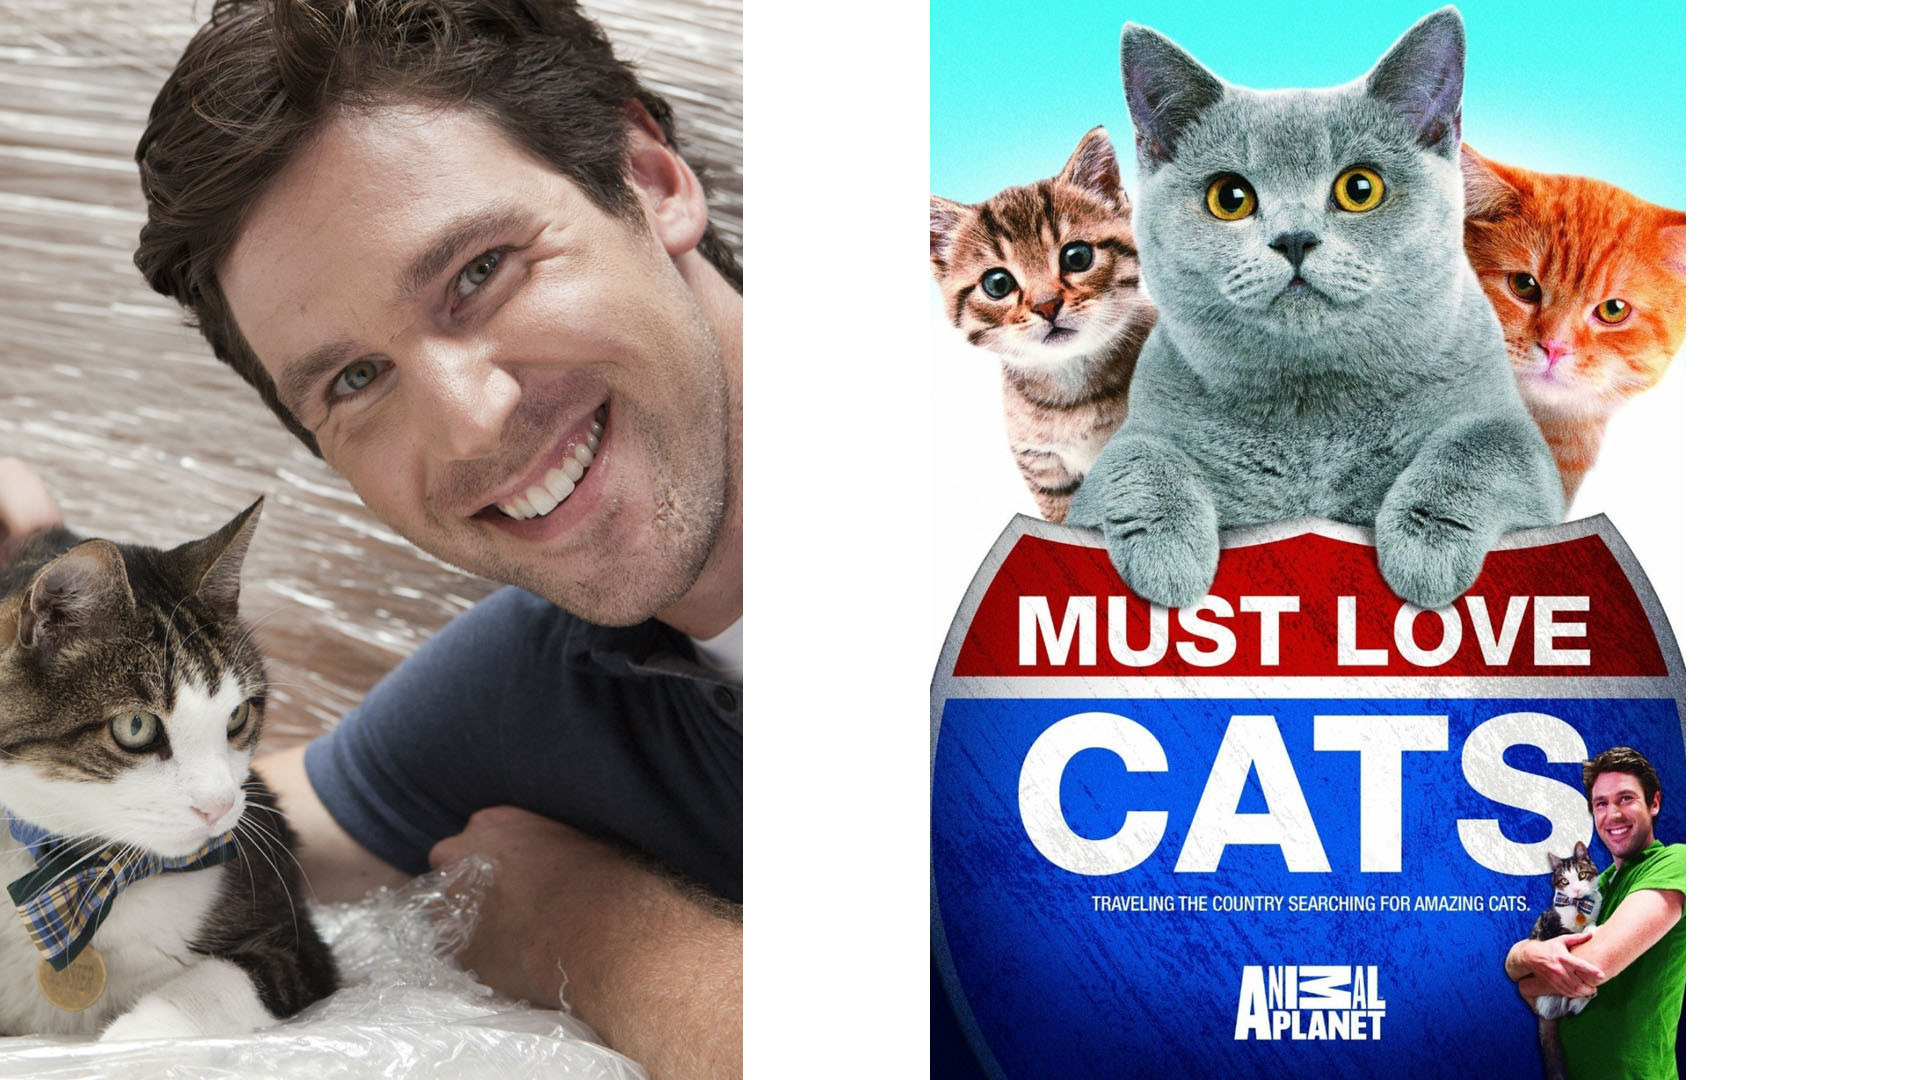 Show Must Love Cats